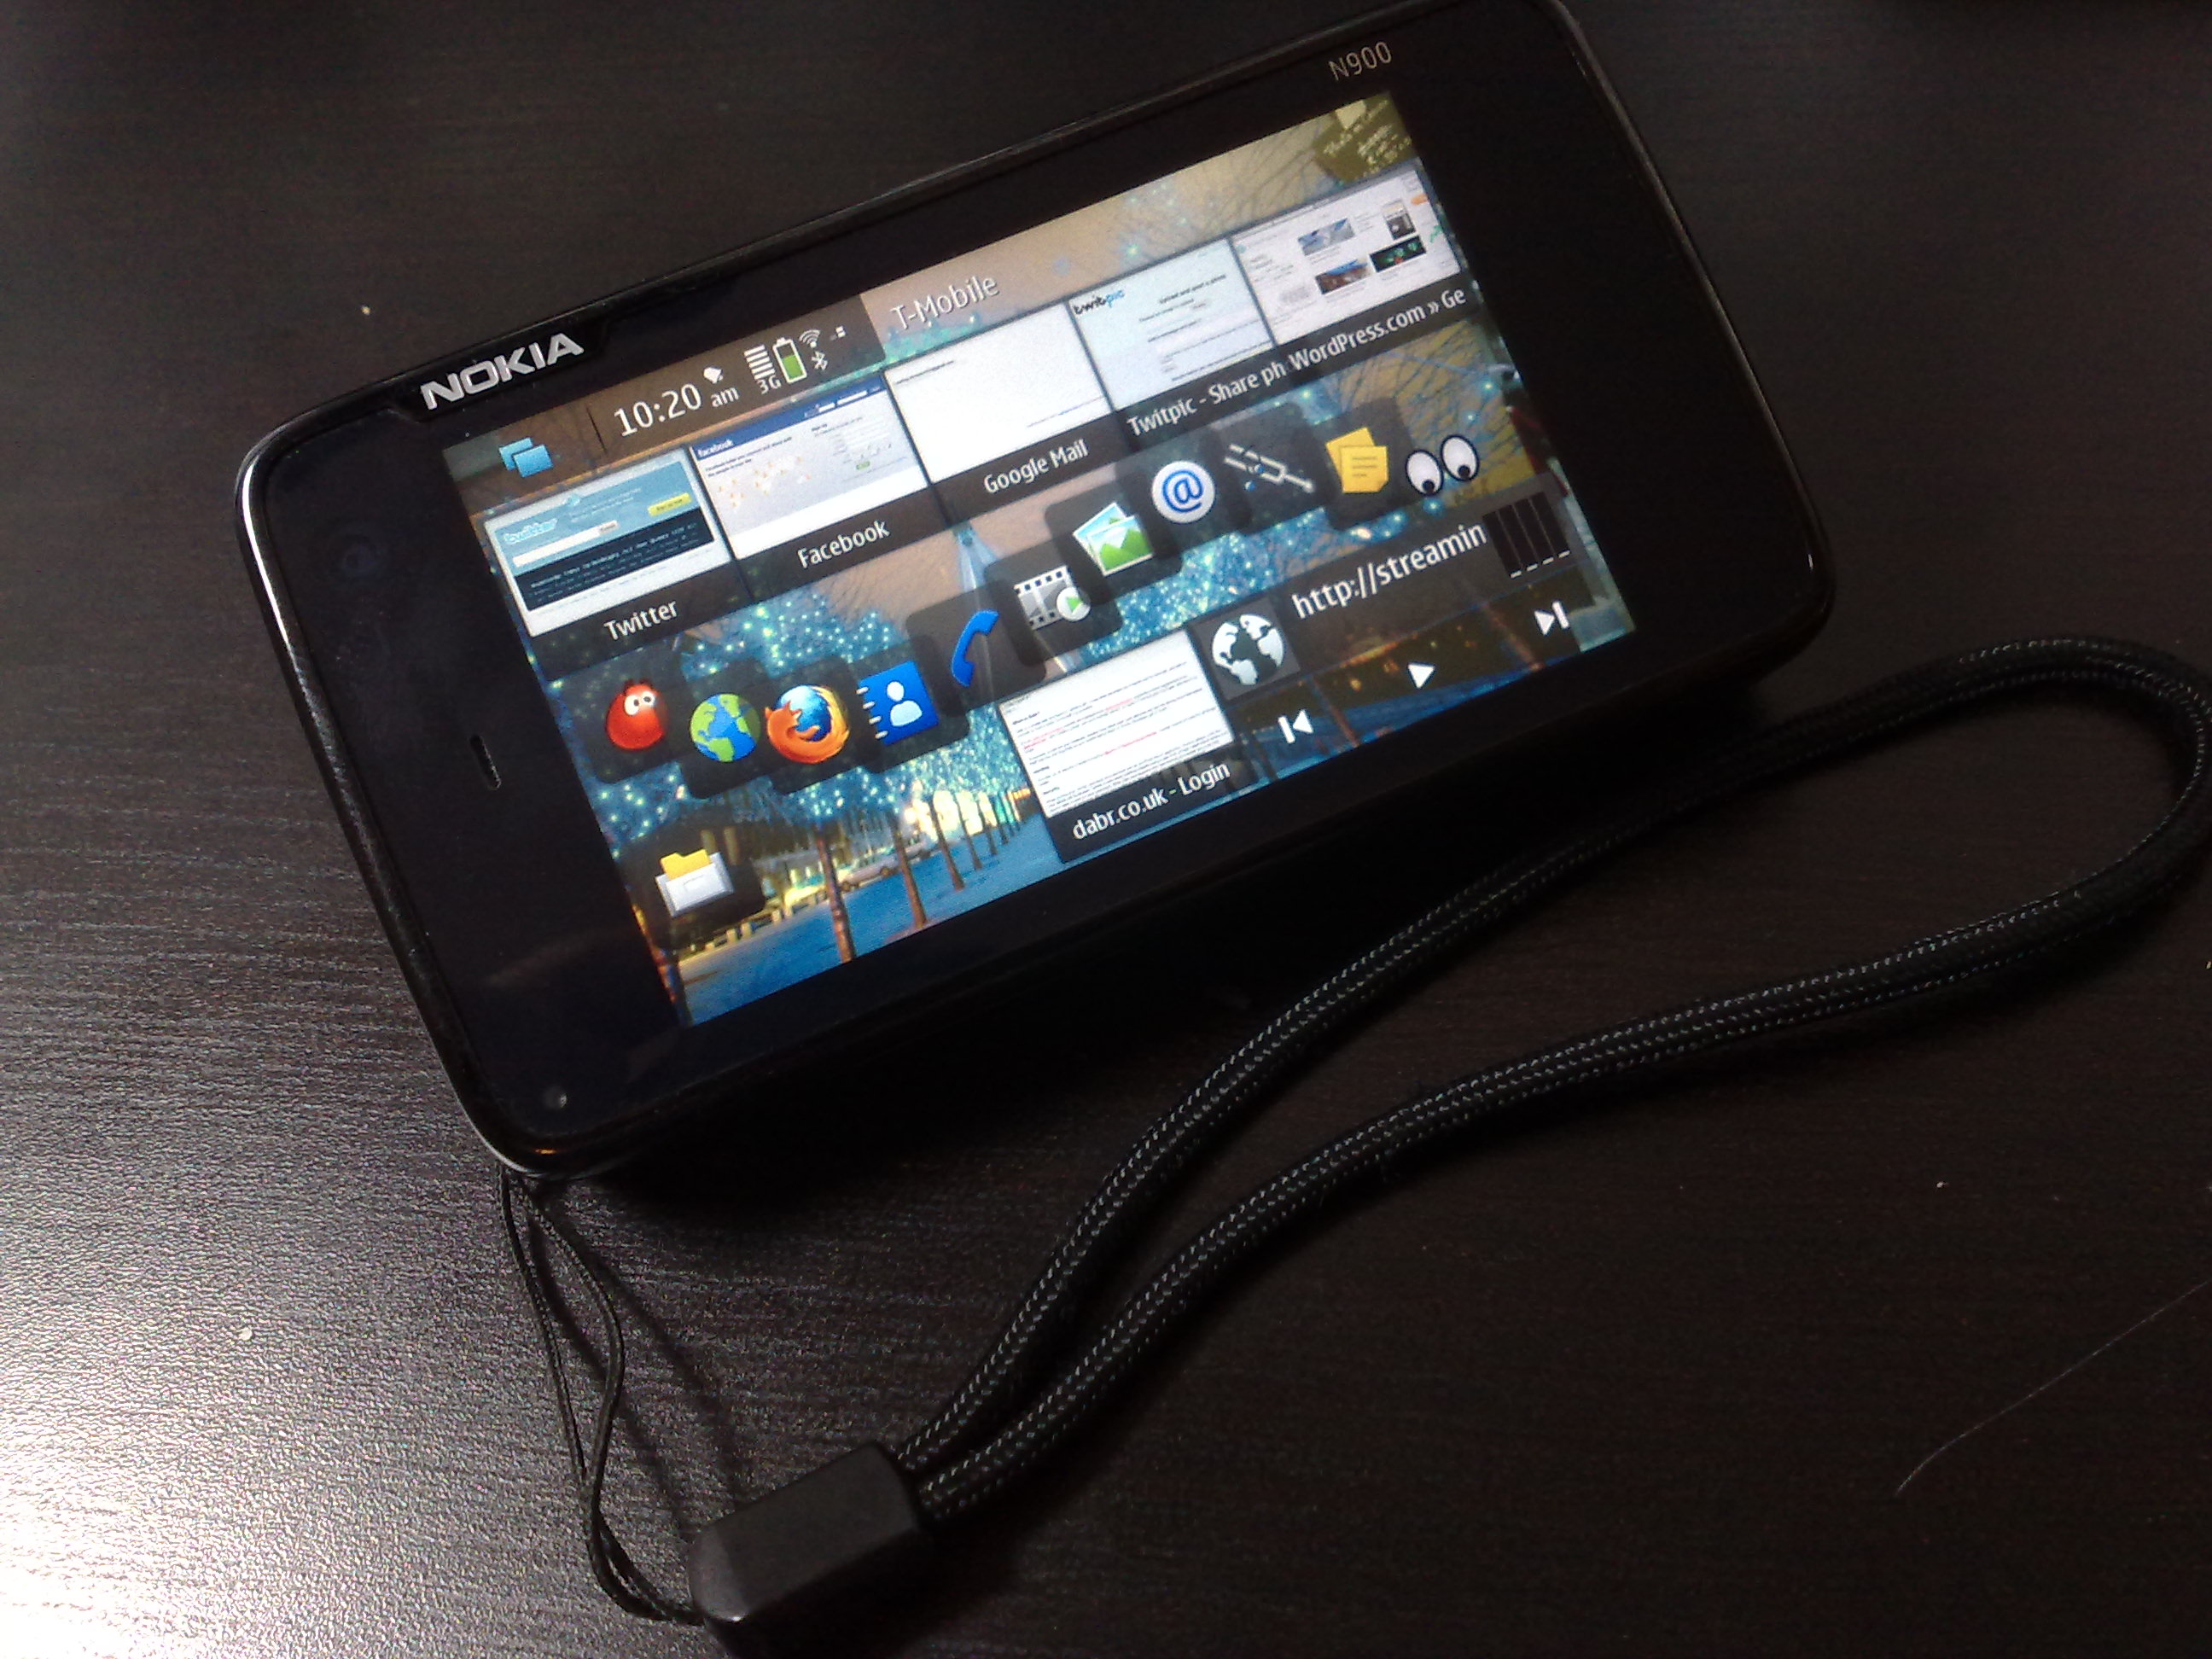 One week with the N900: 22 things I love and a few things (9) that I don't